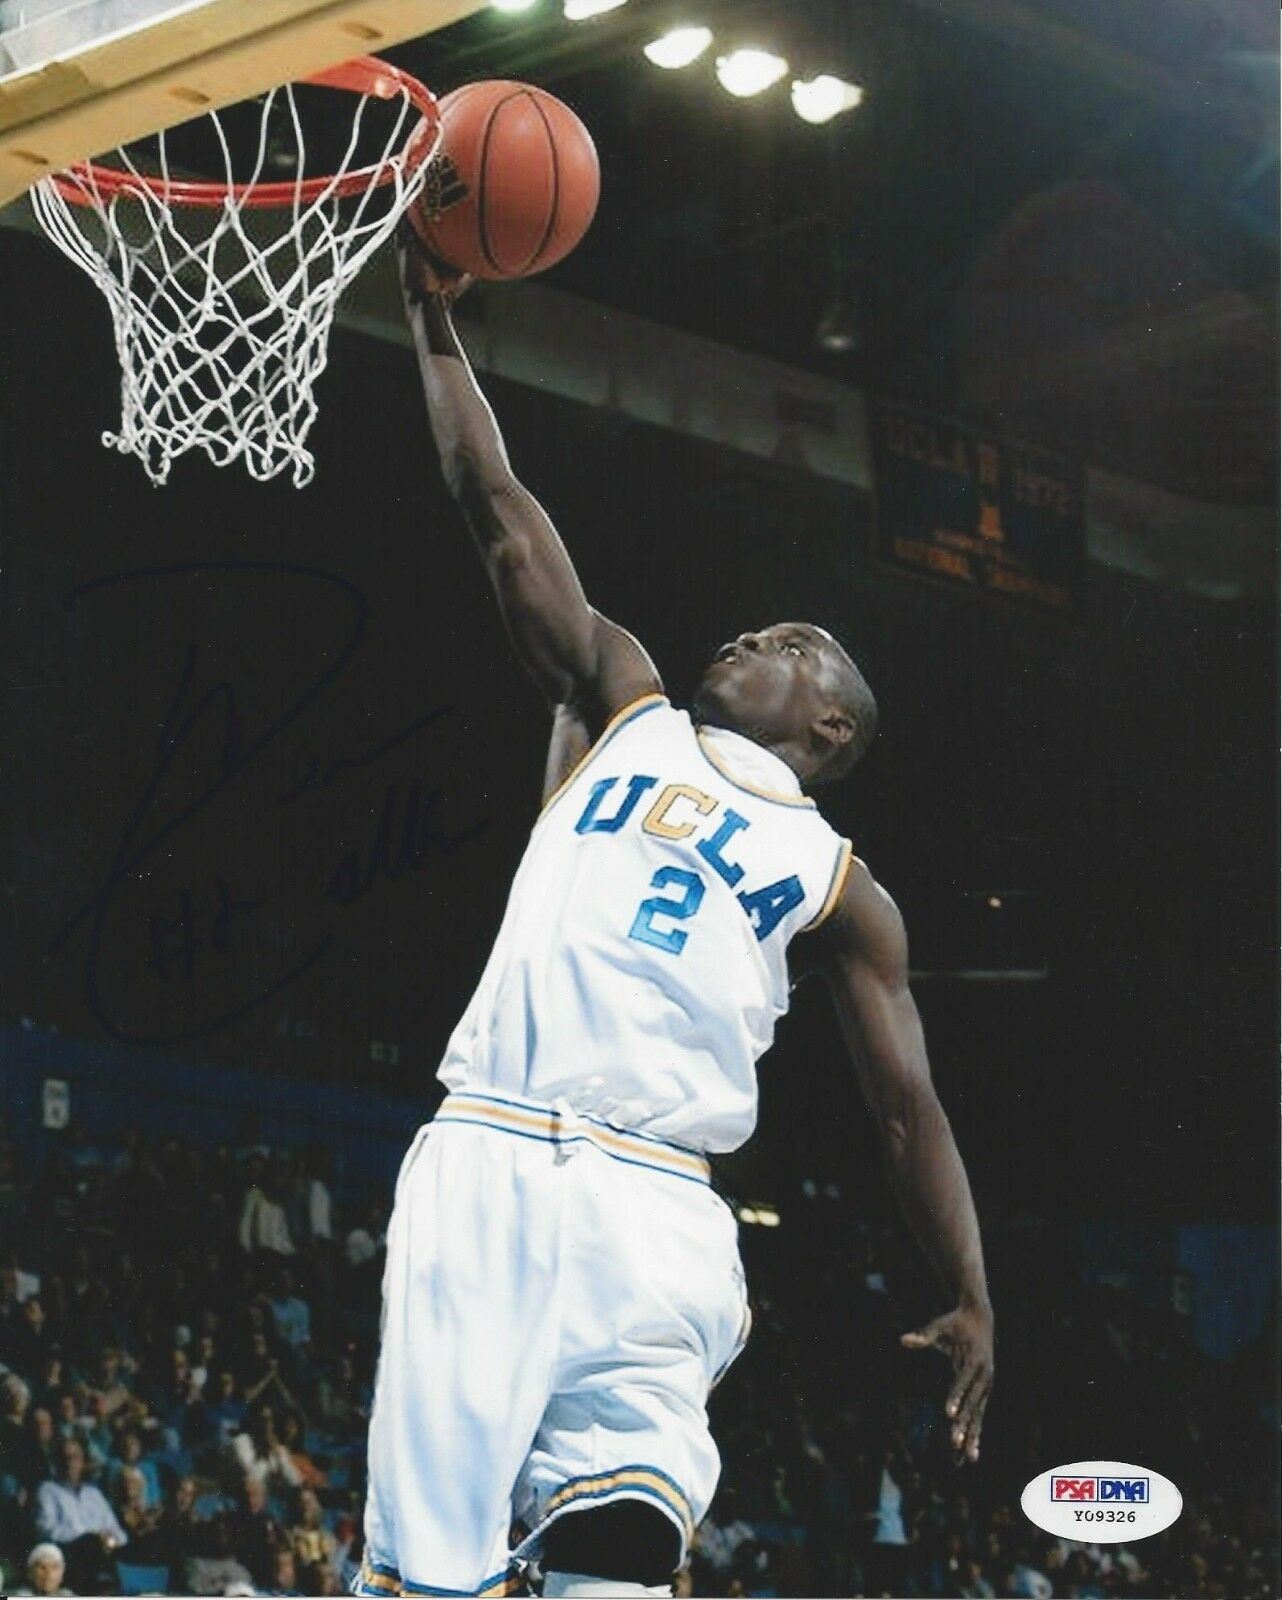 Darren Collison UCLA Bruins Signed 8x10 Photo - PSA/DNA # Y09326